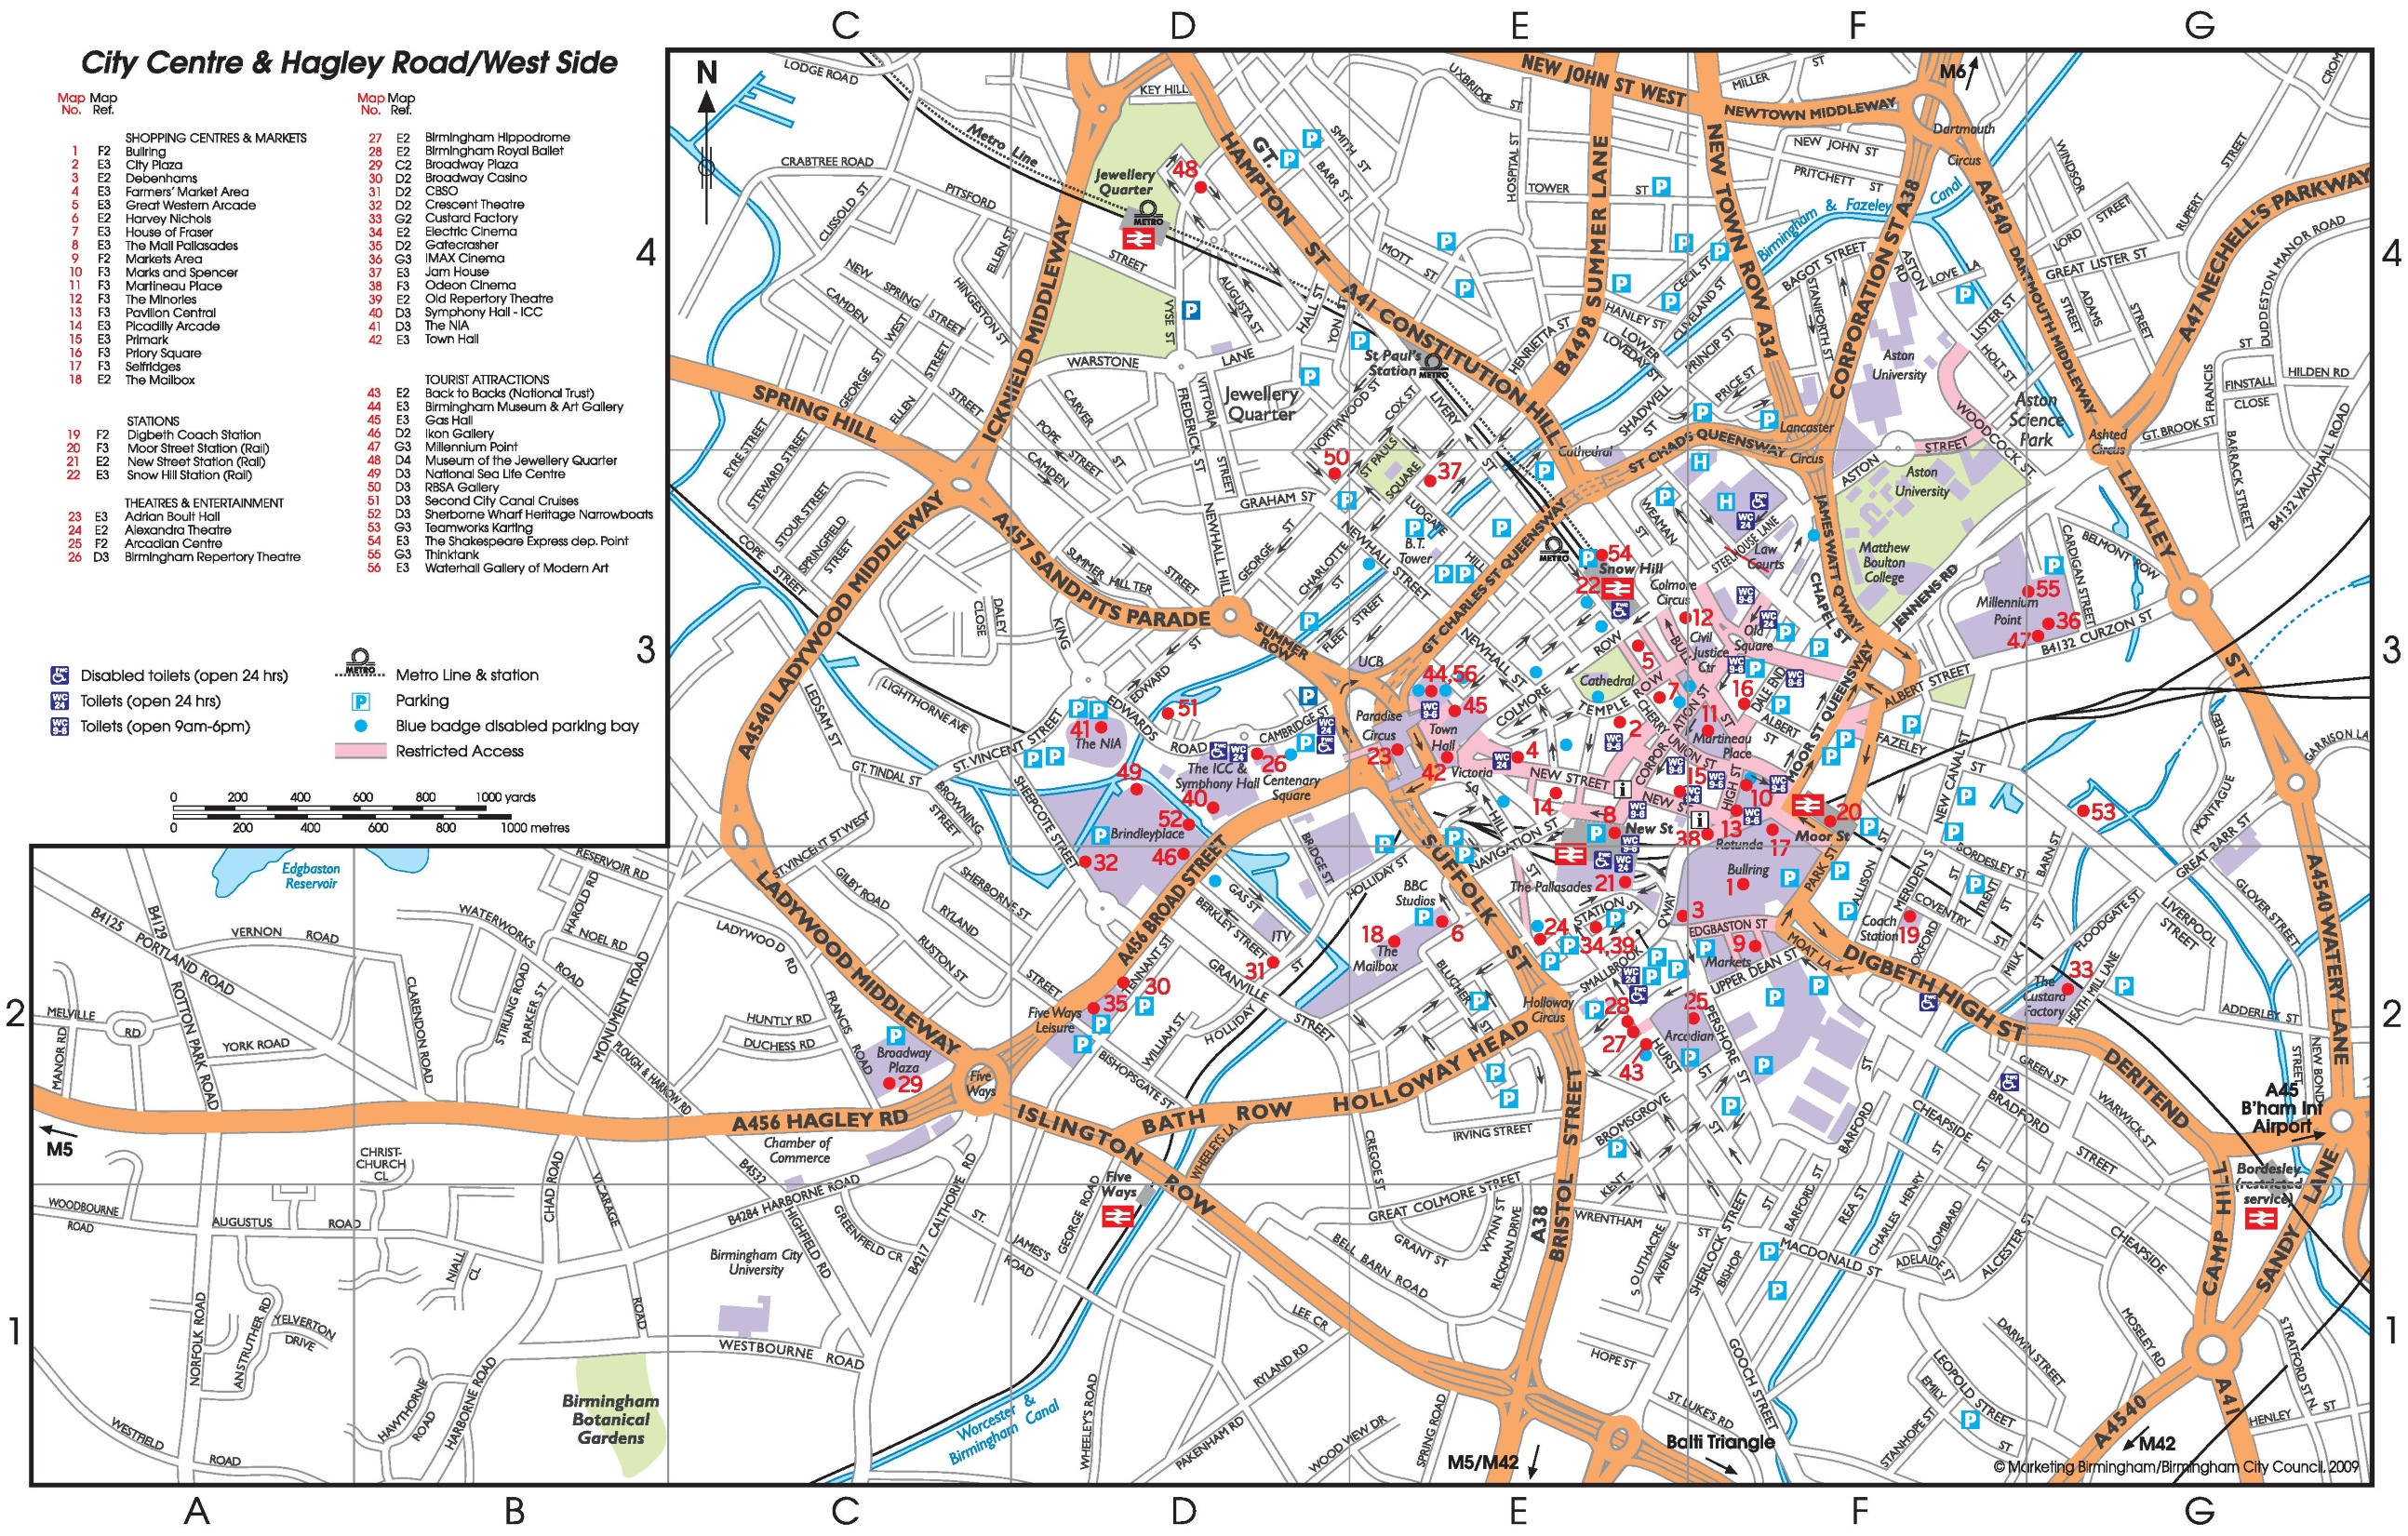 Birmingham City Map Birmingham tourist map Birmingham City Map